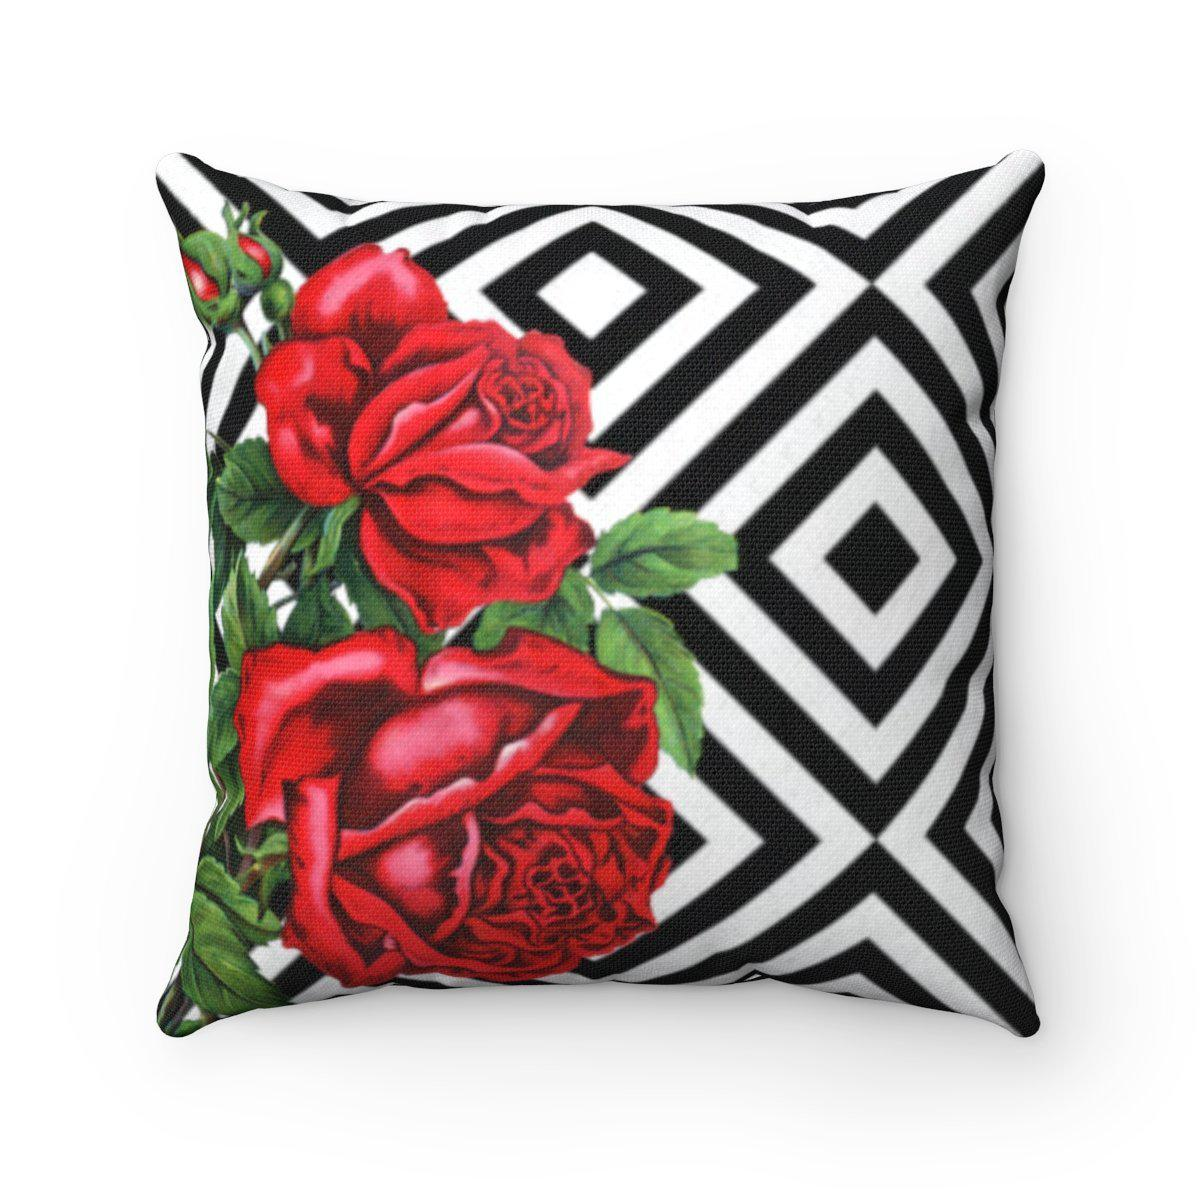 Luxury Roses | Floral abstract decorative cushion cover-Home Decor - Decorative Accents - Pillows & Throws - Decorative Pillows-Maison d'Elite-14x14-Très Elite